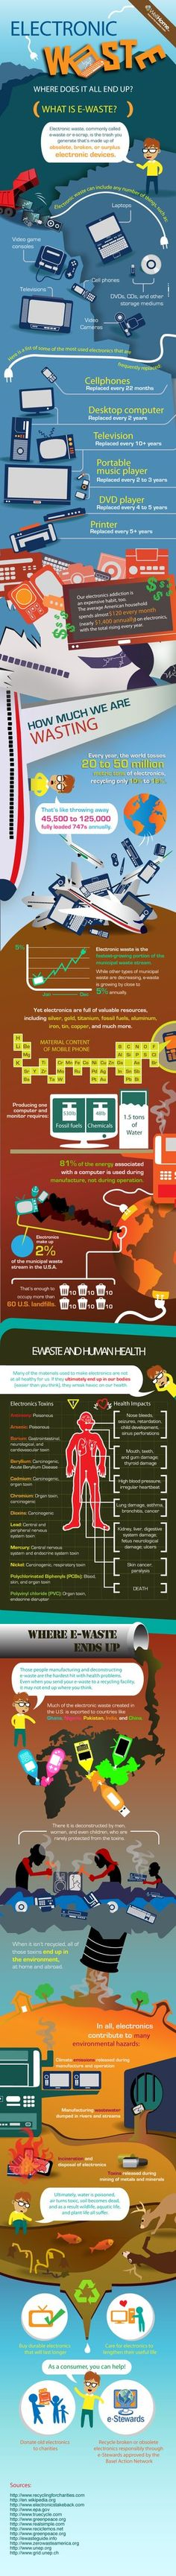 Where do electronics go after they die? #infographic #green #sustainability #rmogreen